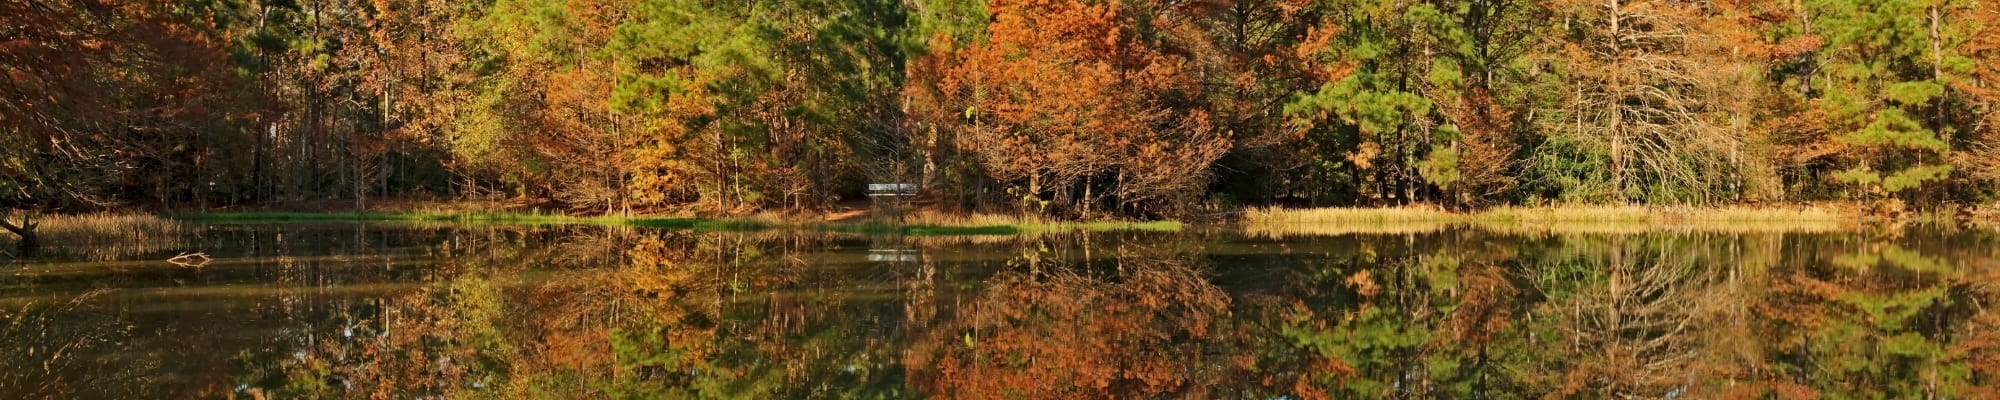 Apply to live at Hilltops in Conroe, Texas